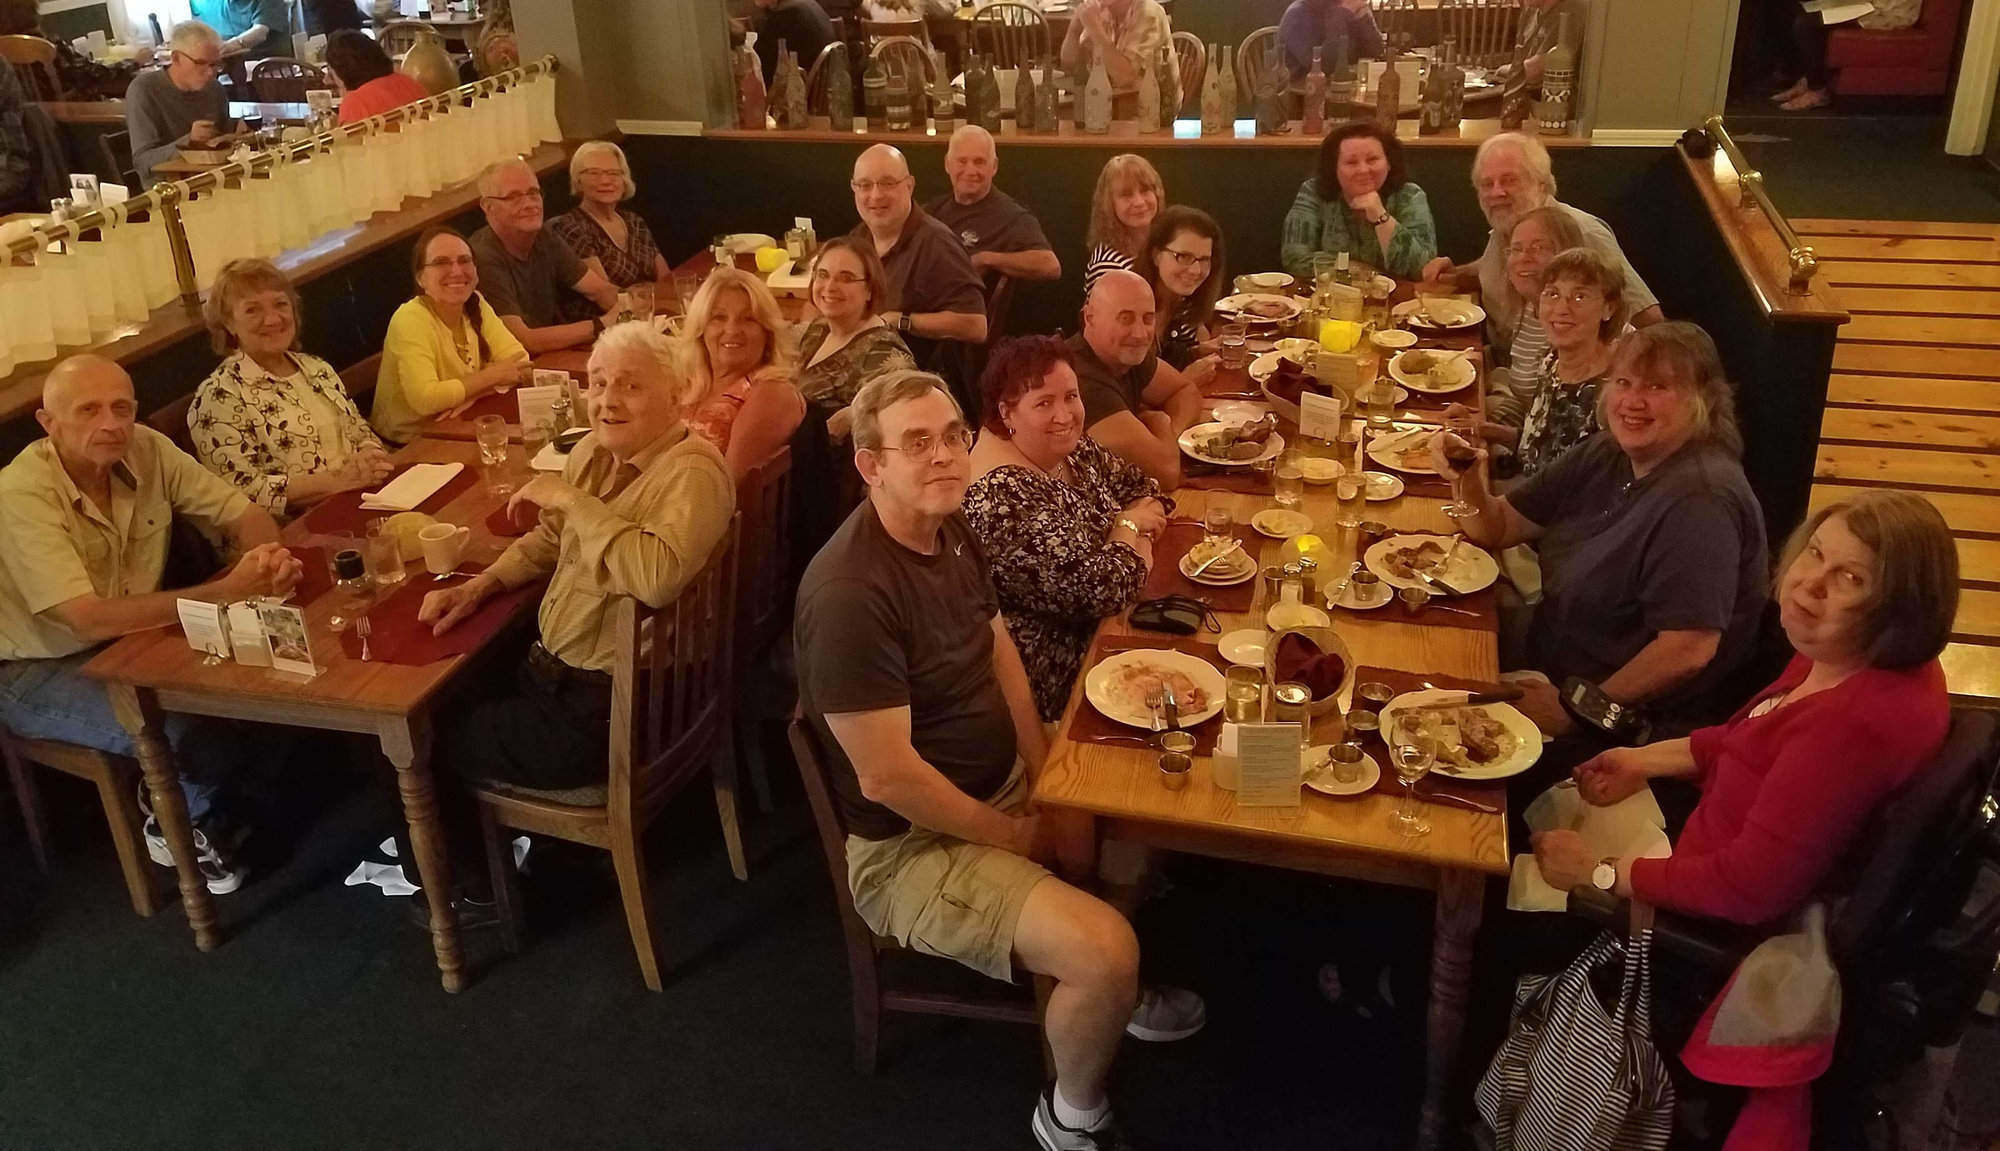 The Ithaca Sociable Singles group at one of its weekly dinners. The group, and others like it, can be a great way for seniors to socialize and meet new people, whether that's to date or to simply make friends.